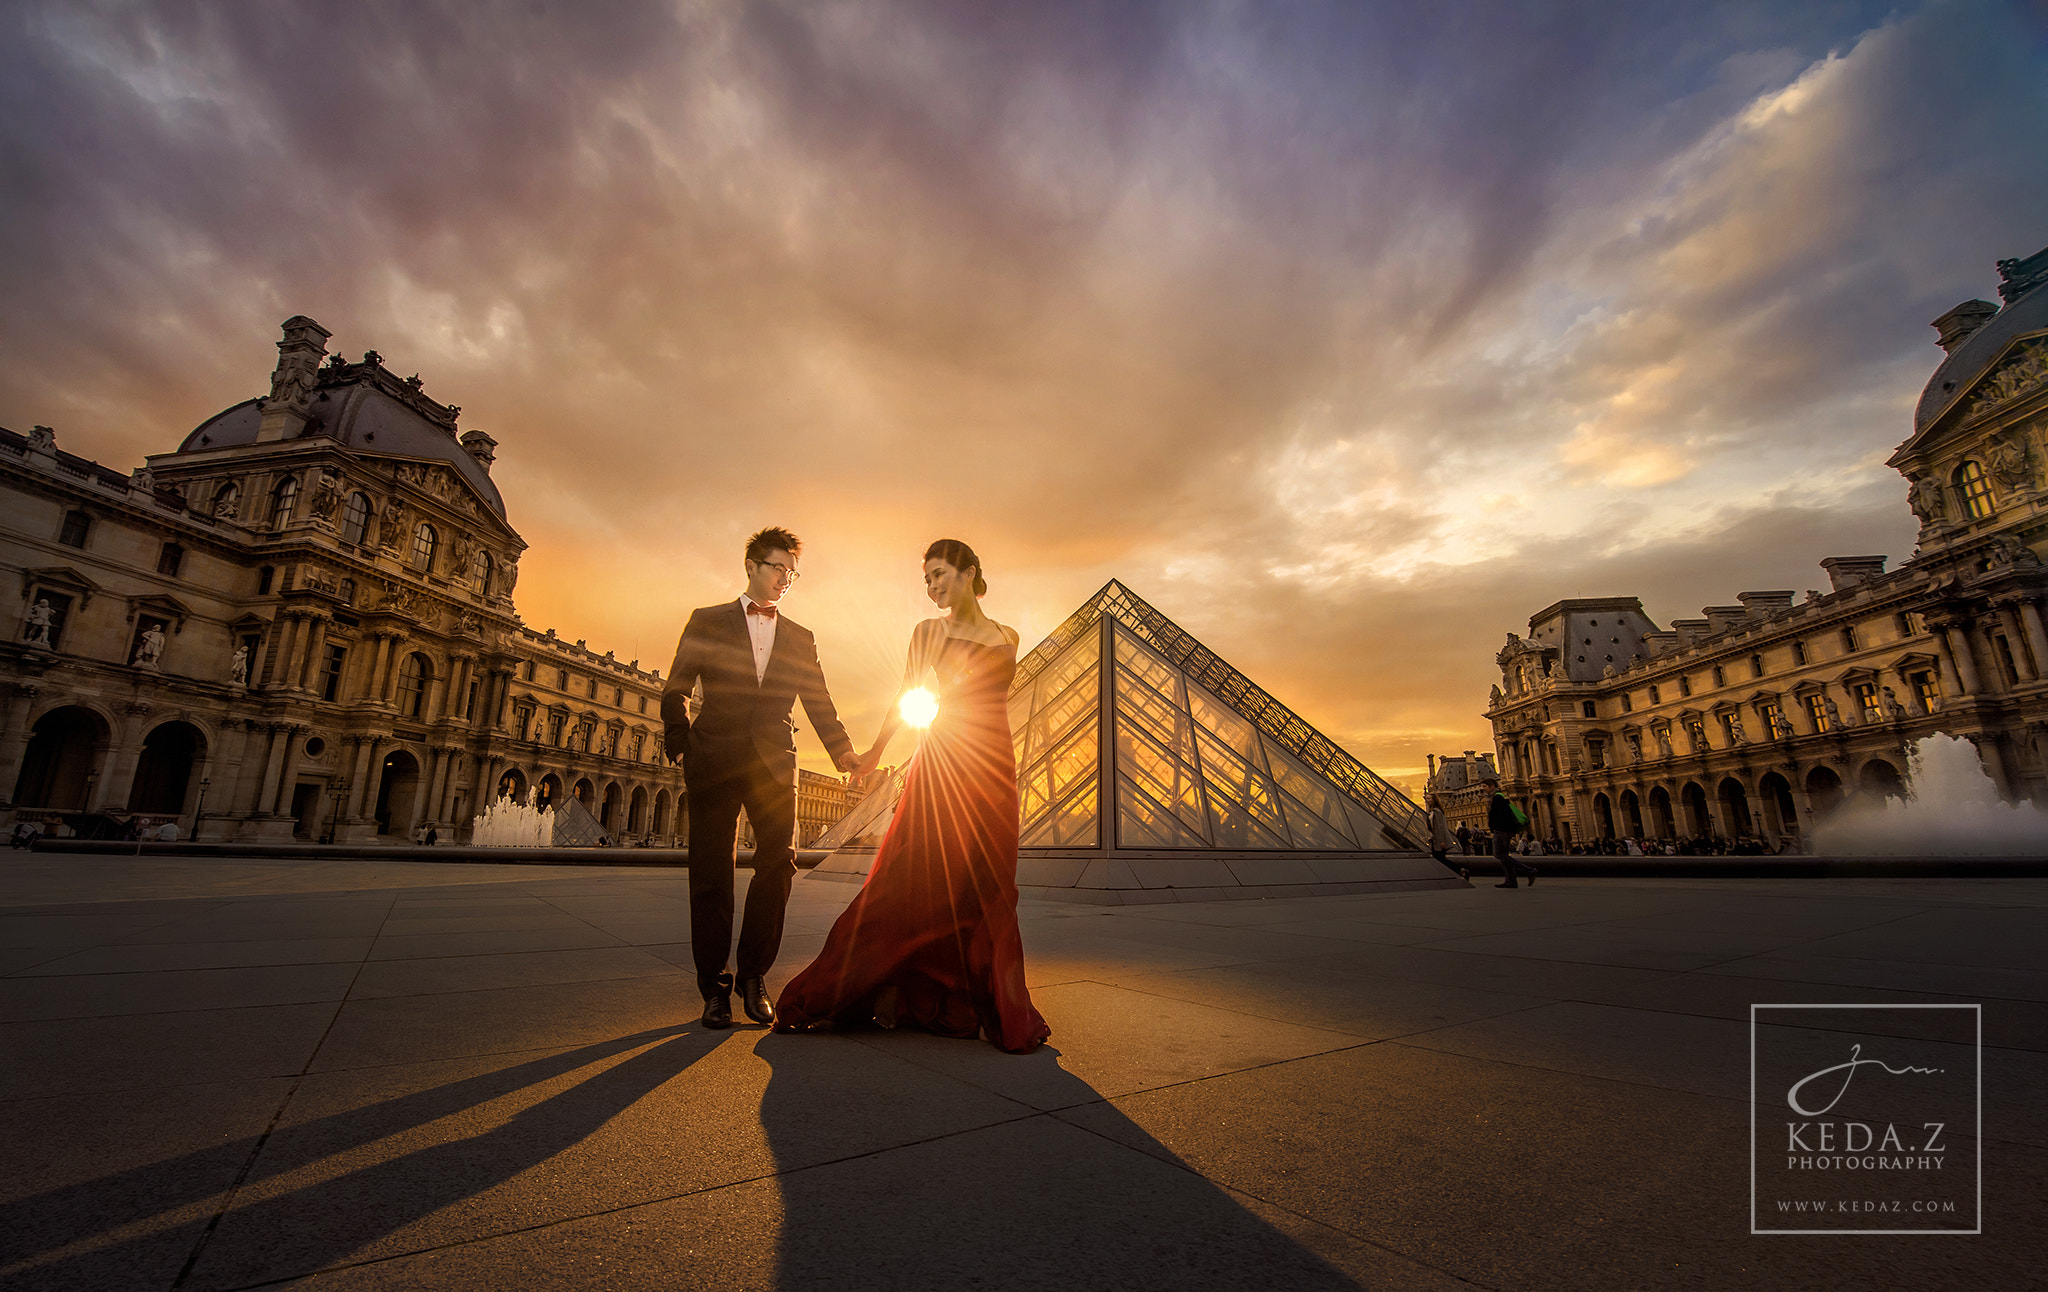 Photograph Love shines in Paris by Keda.Z Feng on 500px